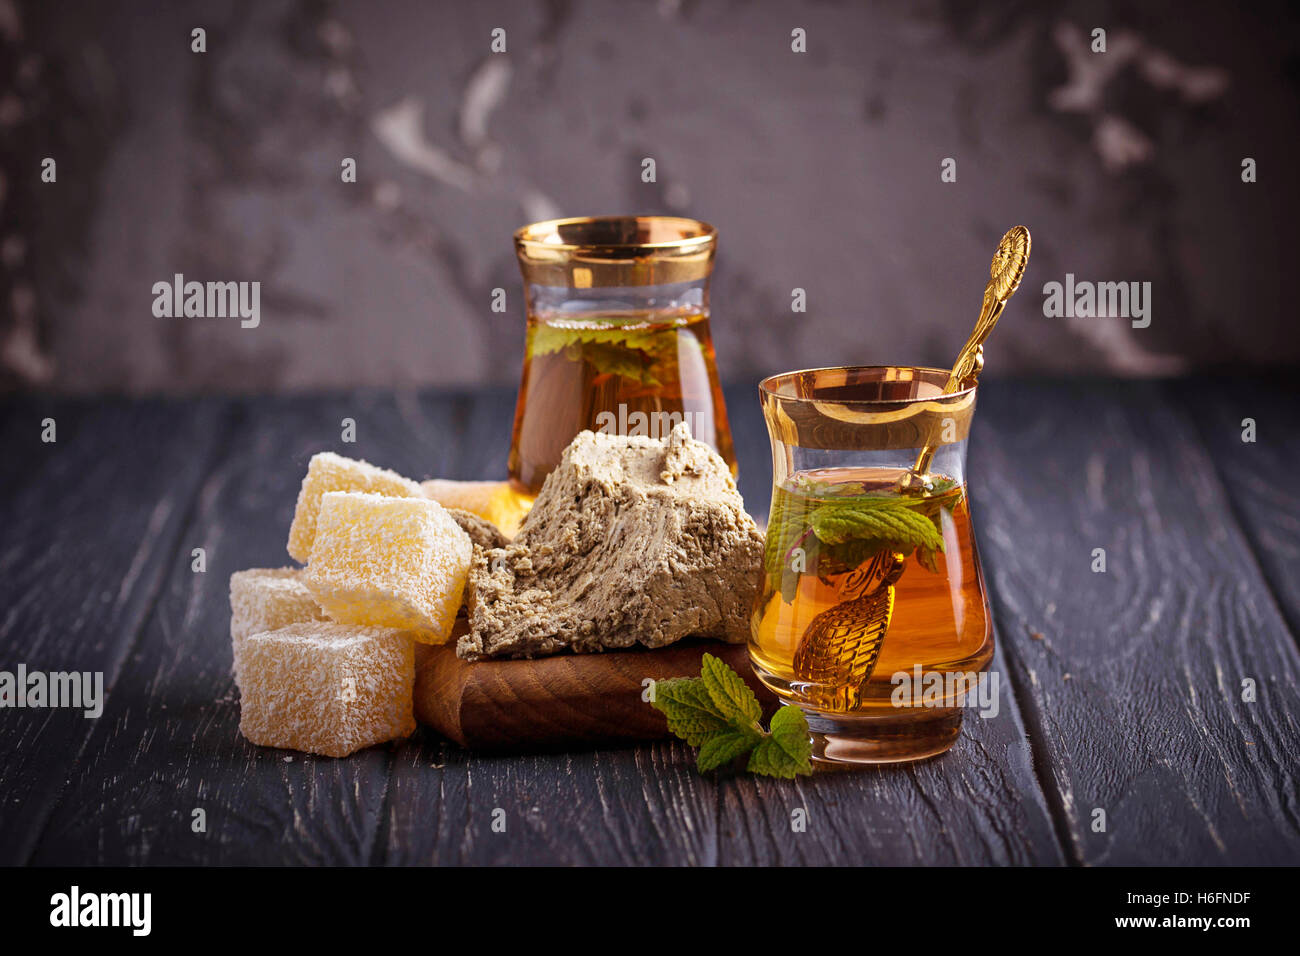 Arabic tea with turkish delight and halva. Selective focus - Stock Image